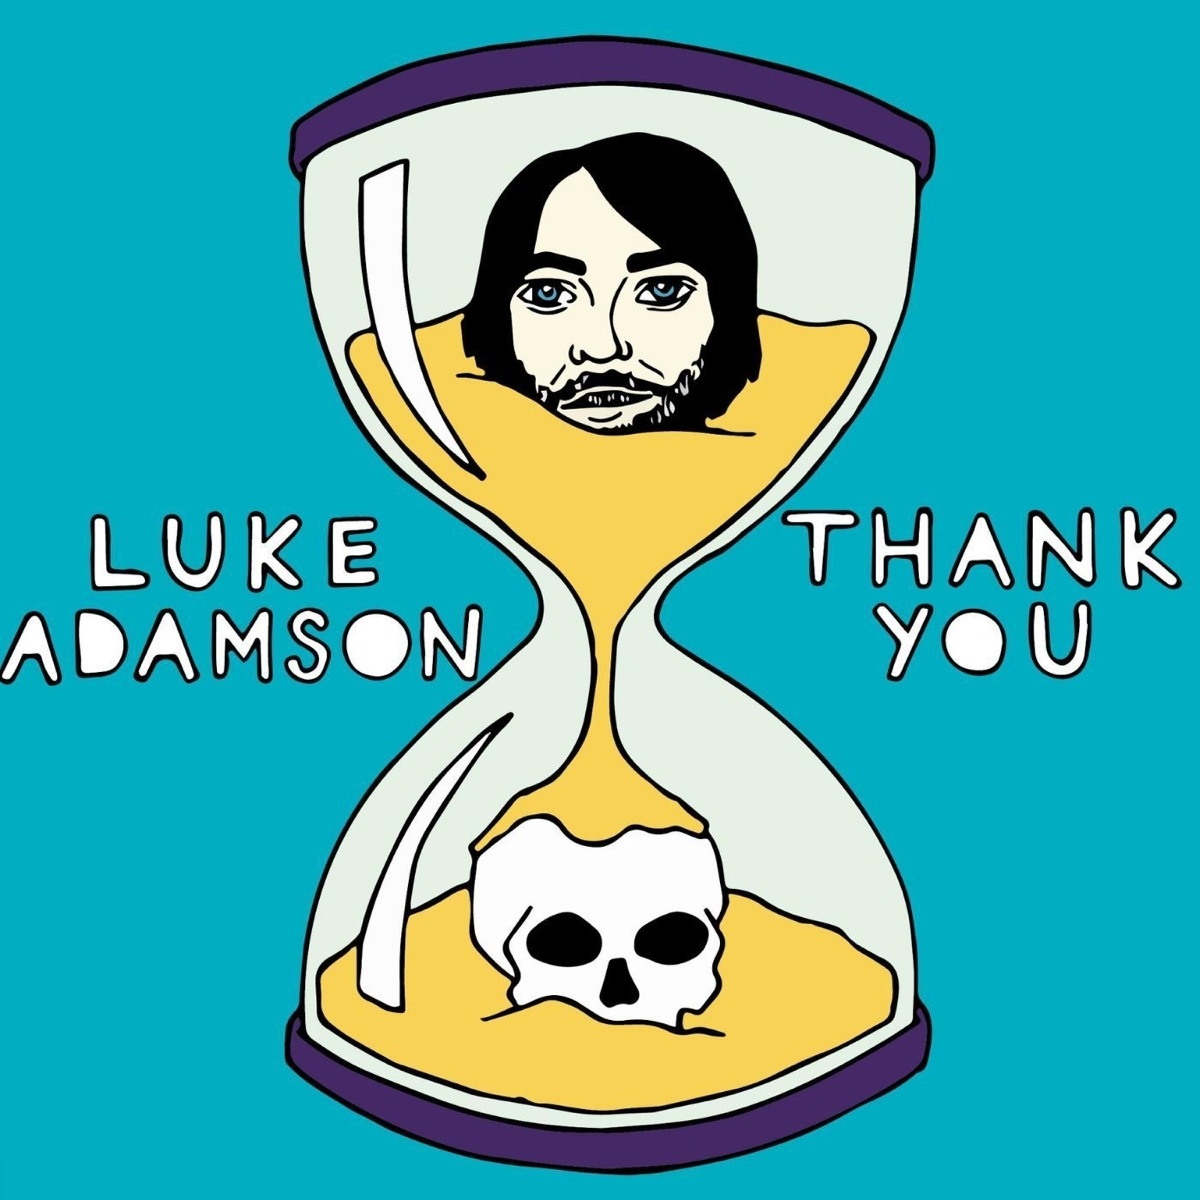 Thank You - Single Luke Adamson CD cover